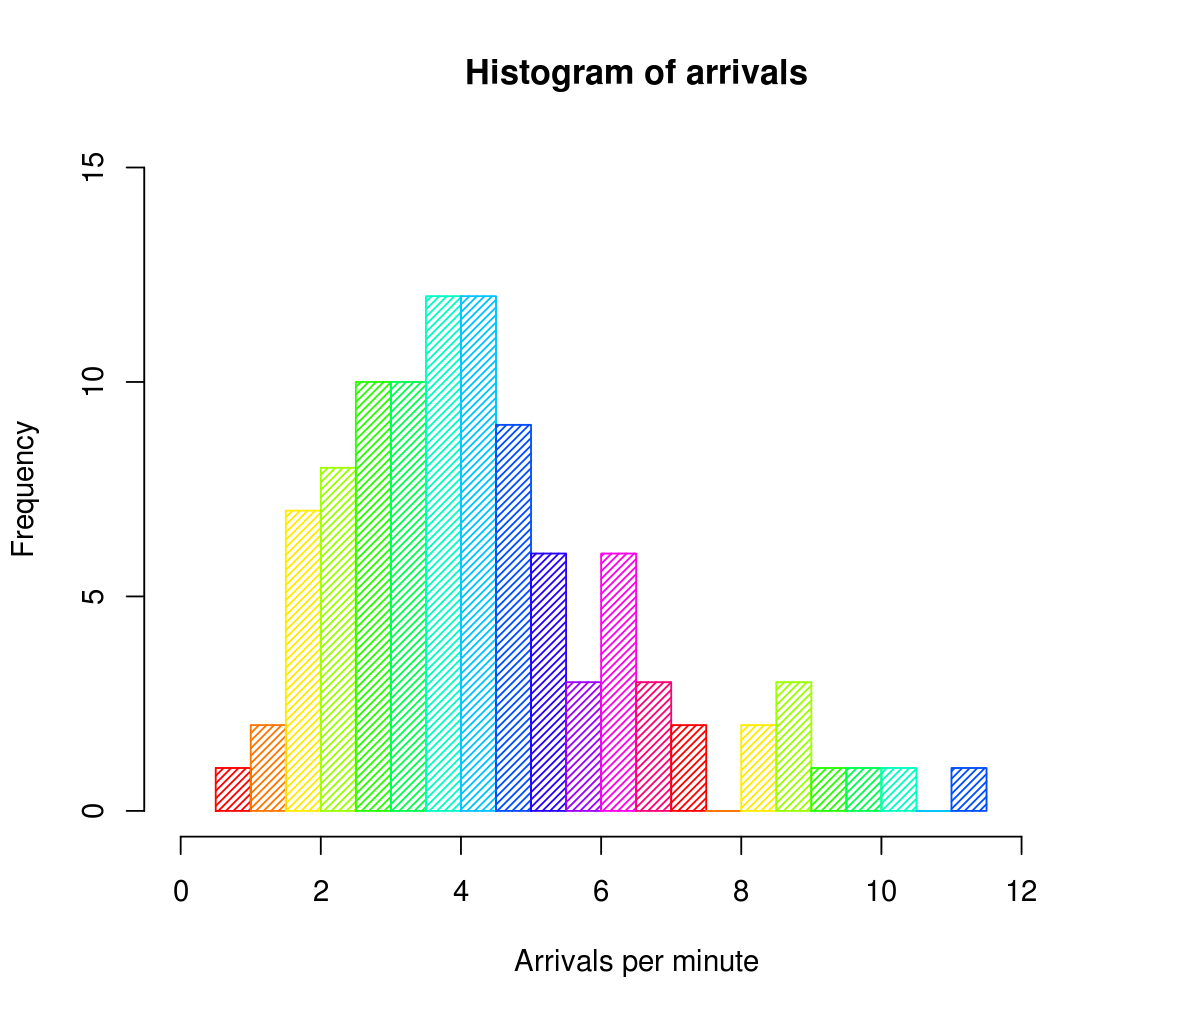 Drawing histogram math. Wikipedia